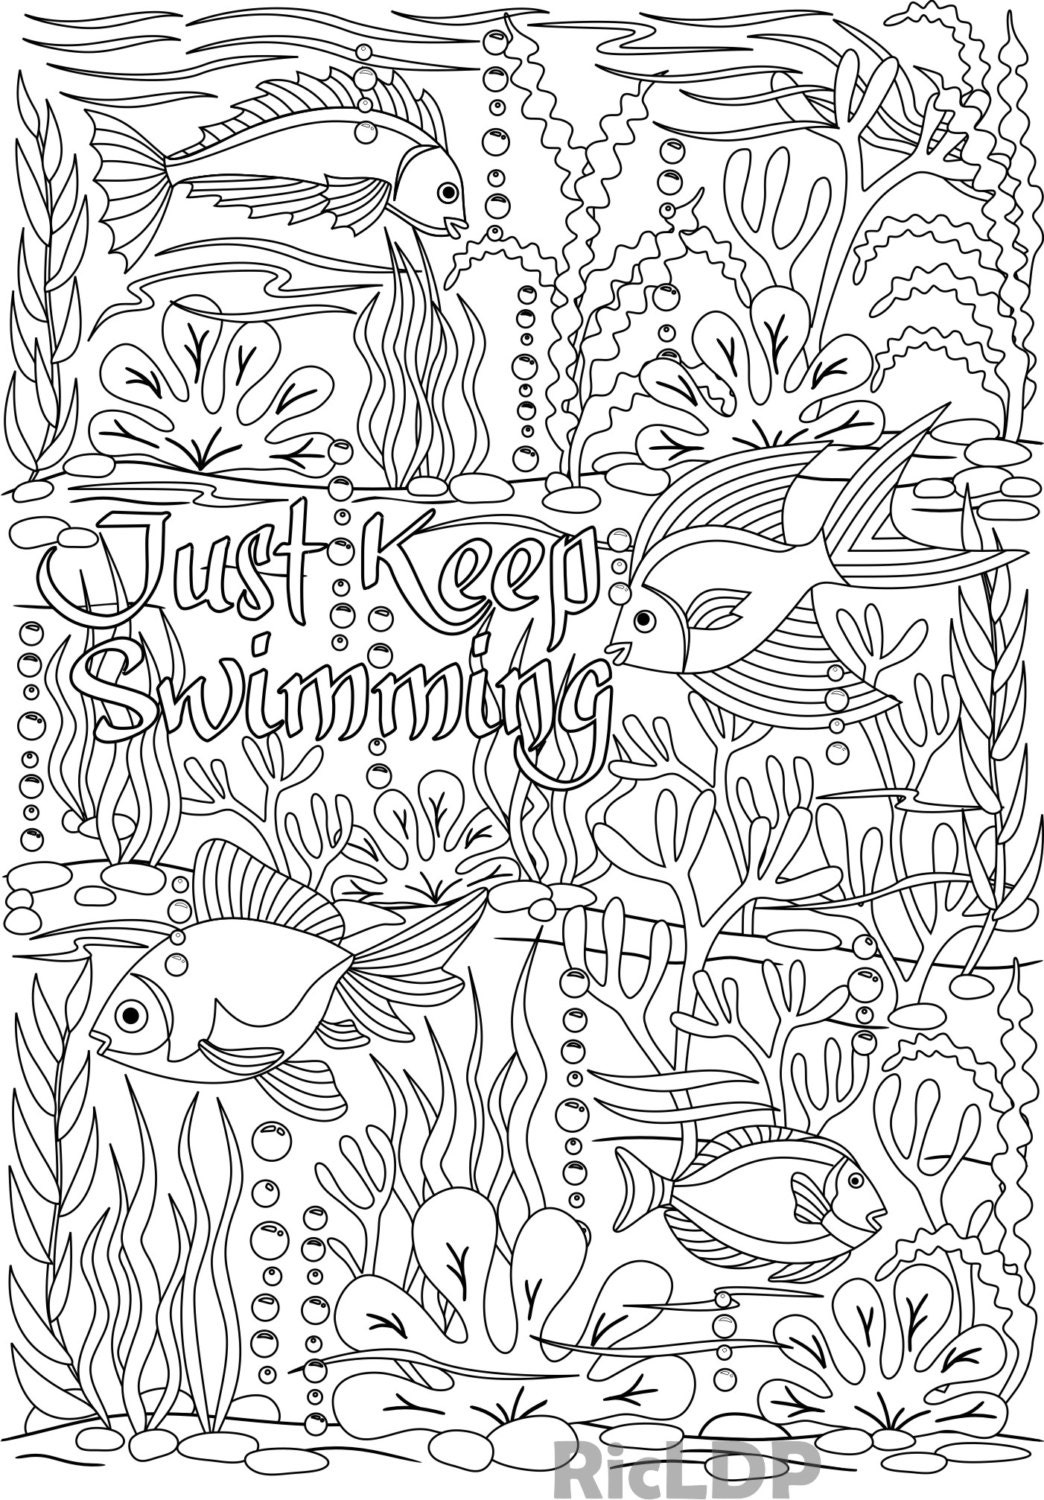 Printable Just Keep Swimming Under The Sea Design